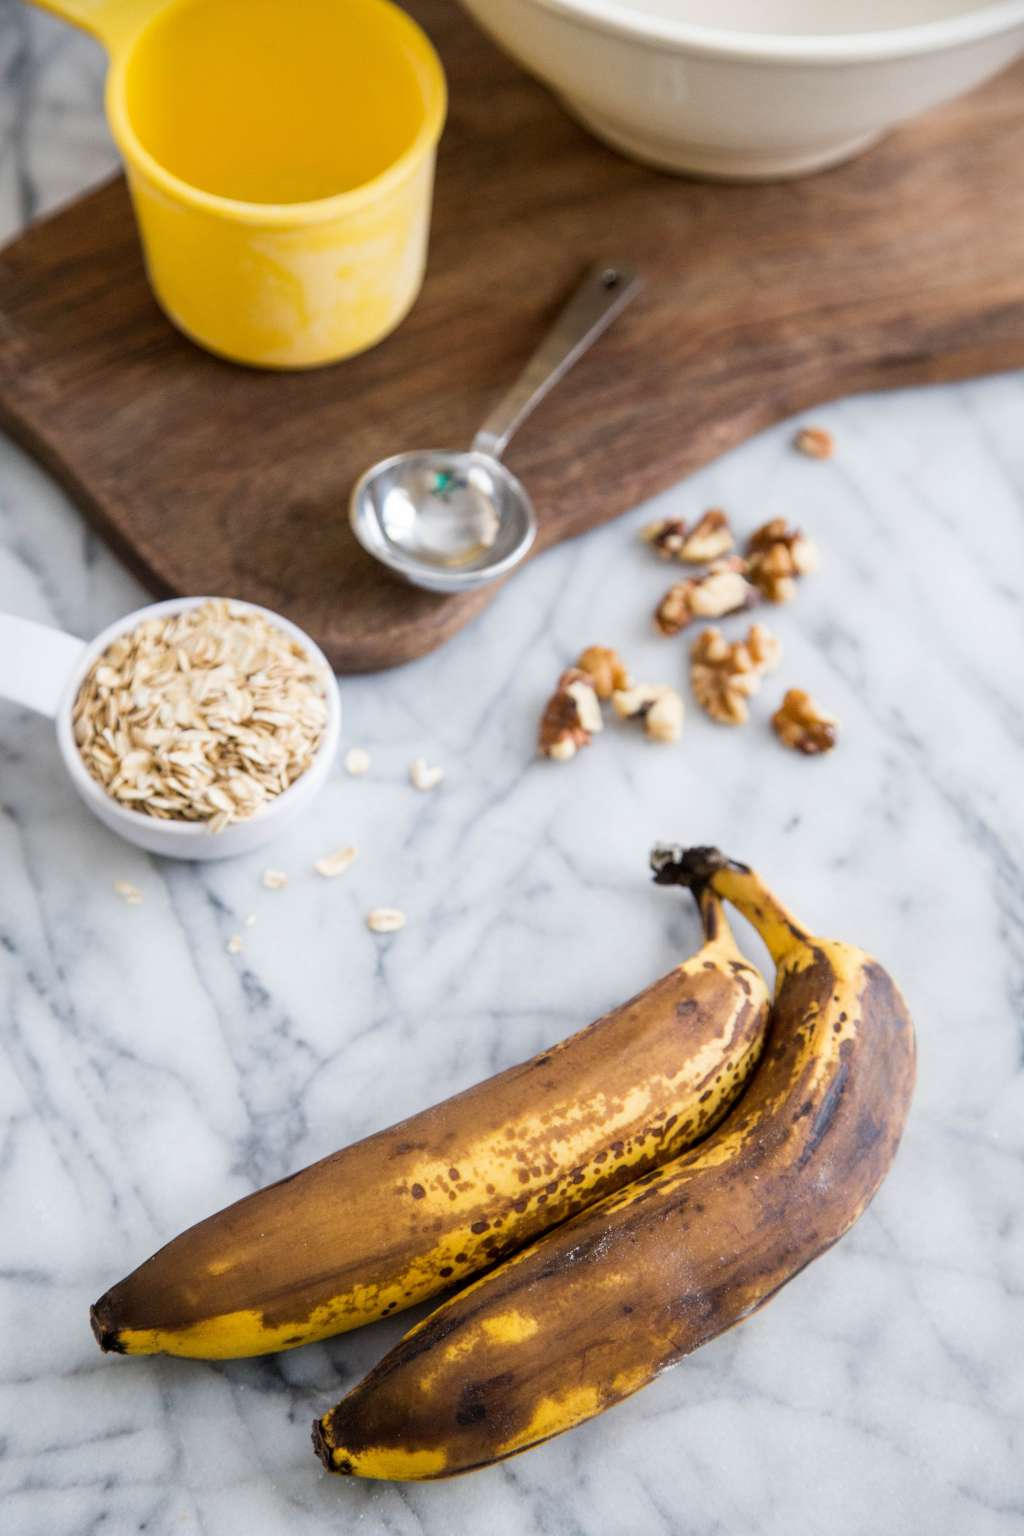 5 Ways to Turn a Brown Banana into a Healthy Snack